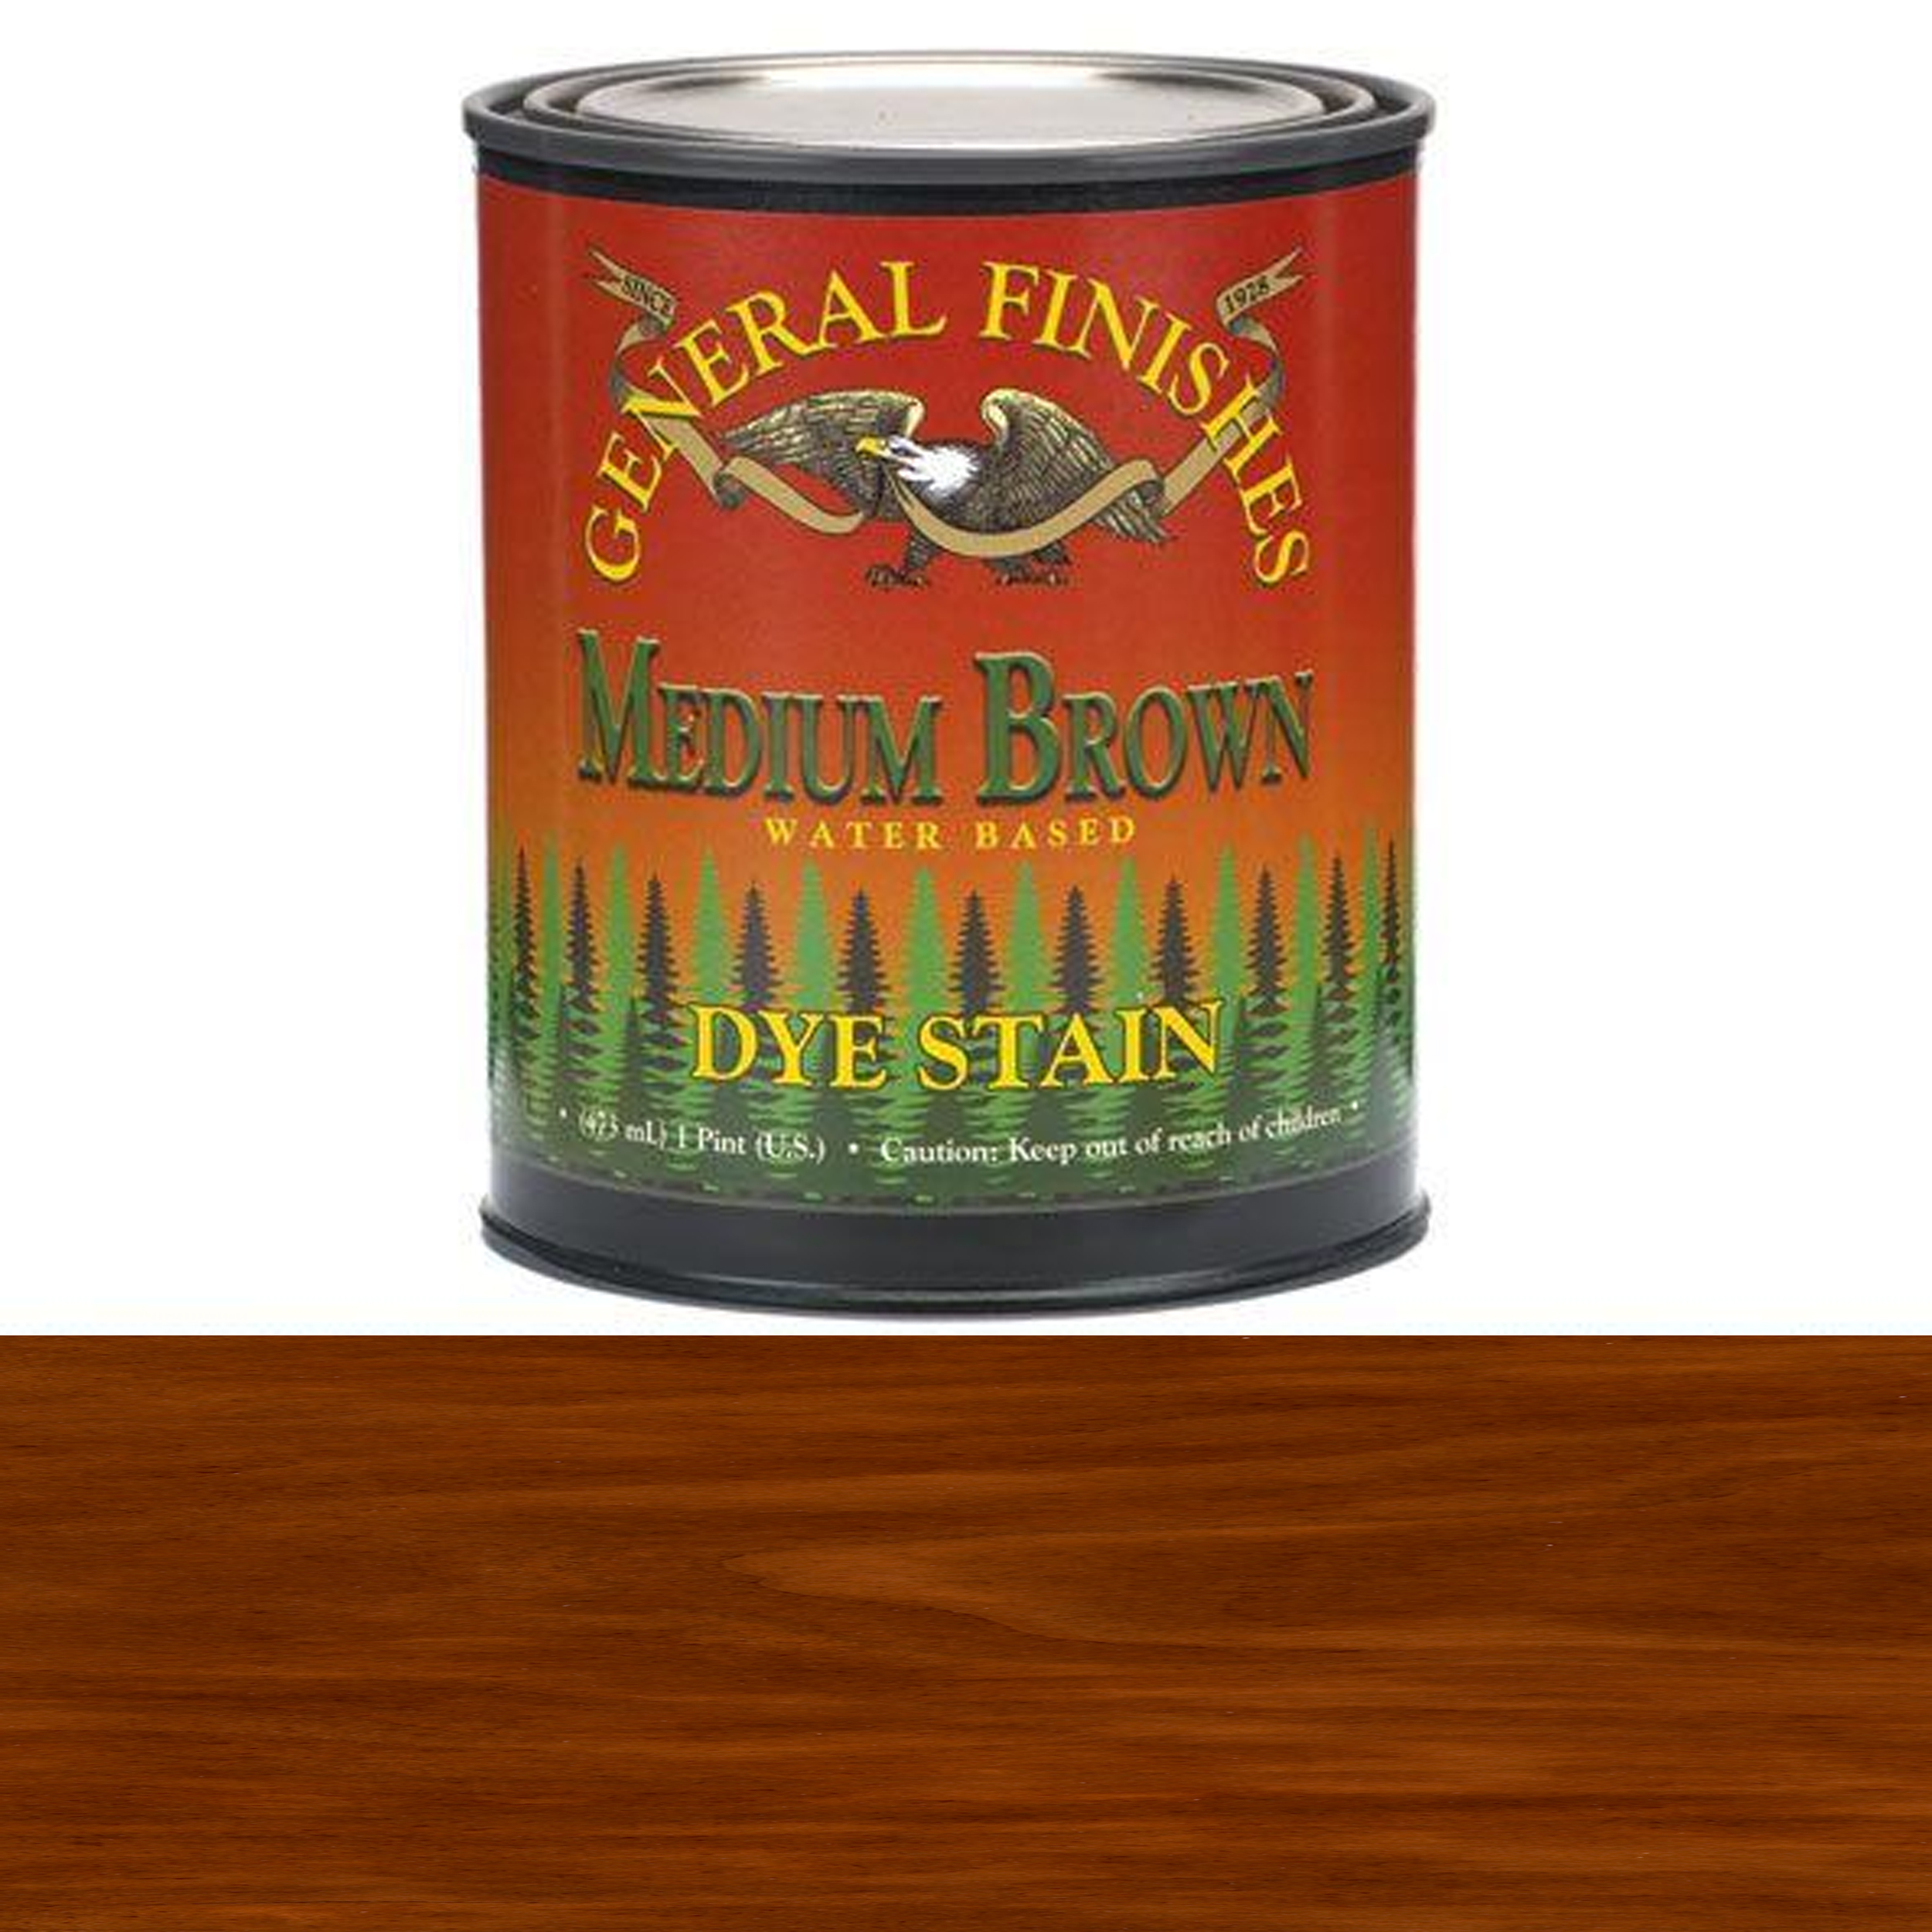 General Finishes, Dye Stains, Medium Brown, Pint